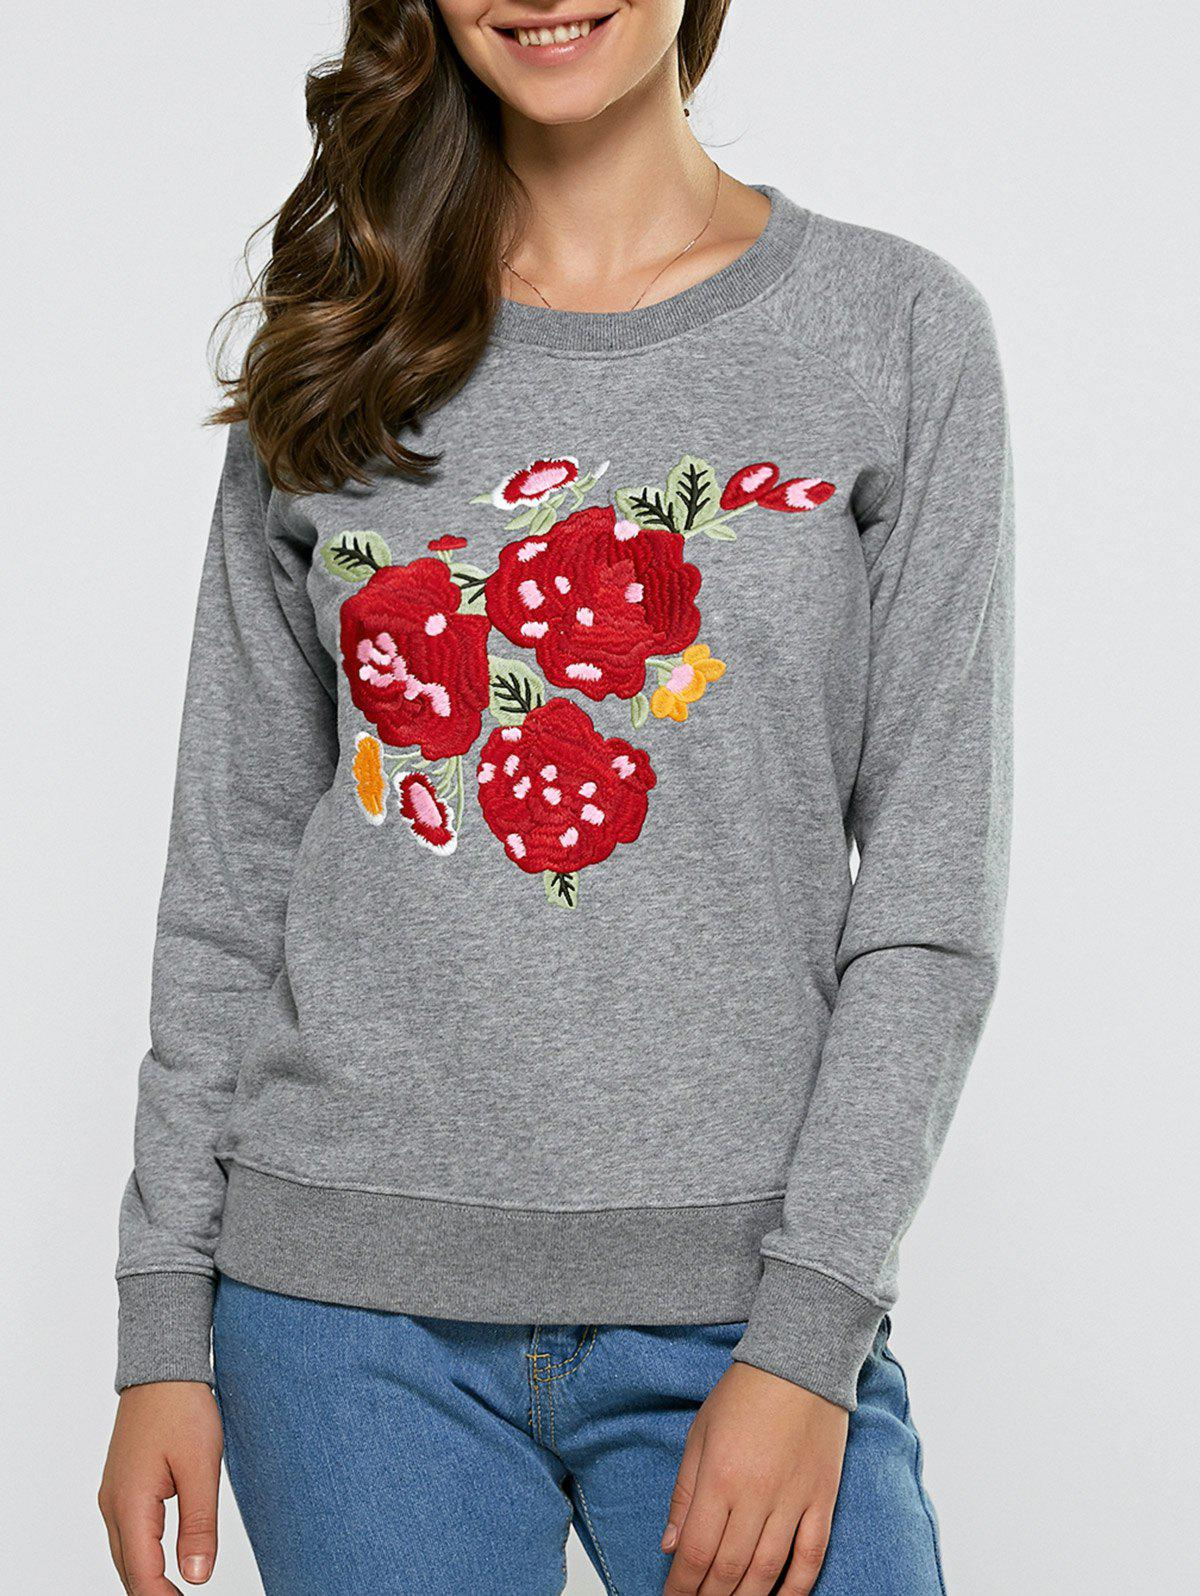 Store Floral Embroidered Casual Sweatshirt